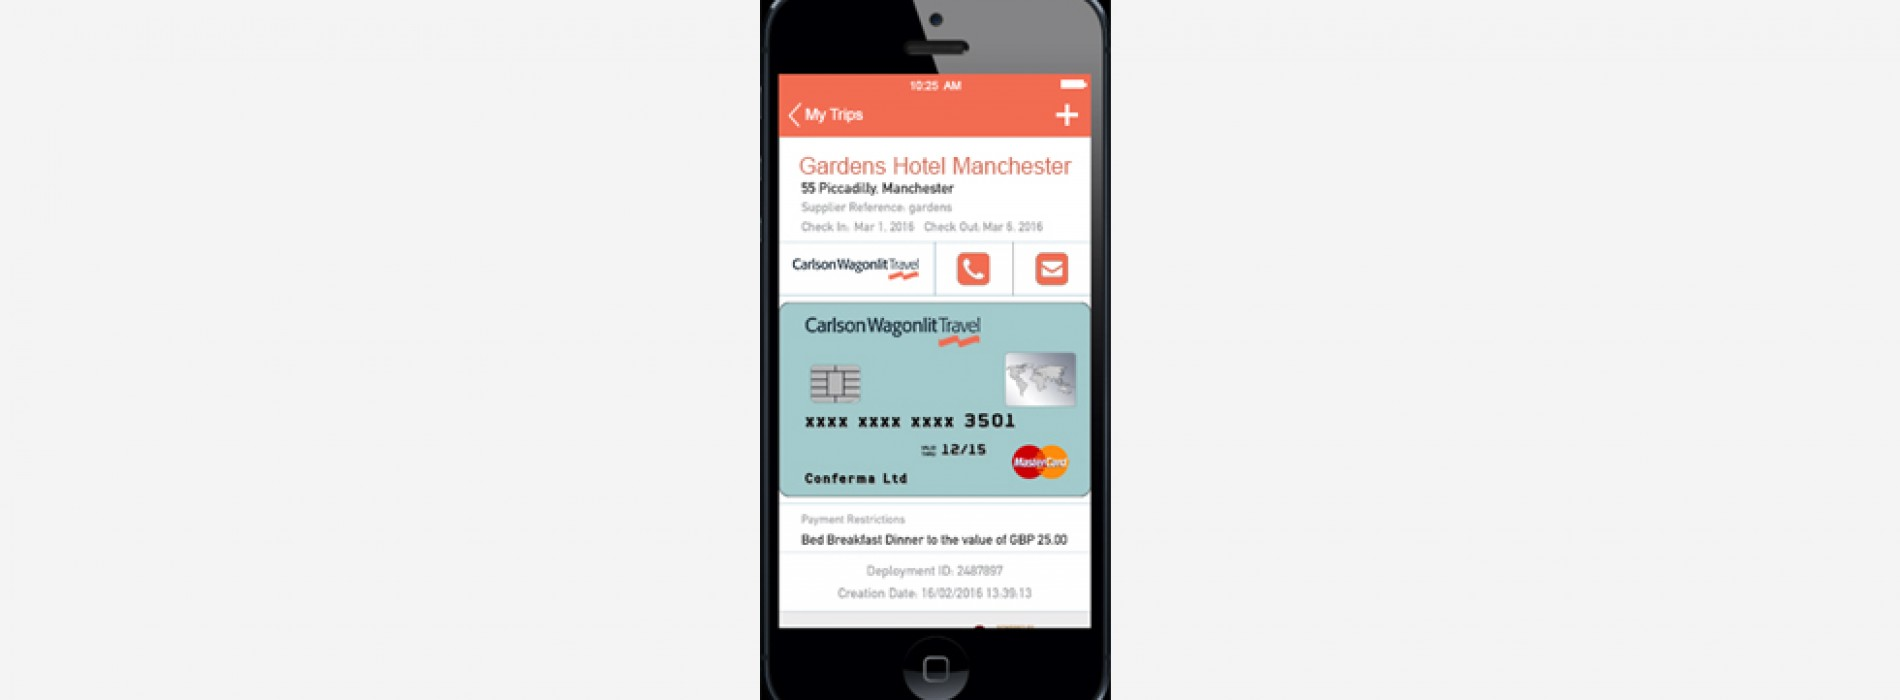 Virtual payment makes business travel more efficient, compliant and fraud-resistant